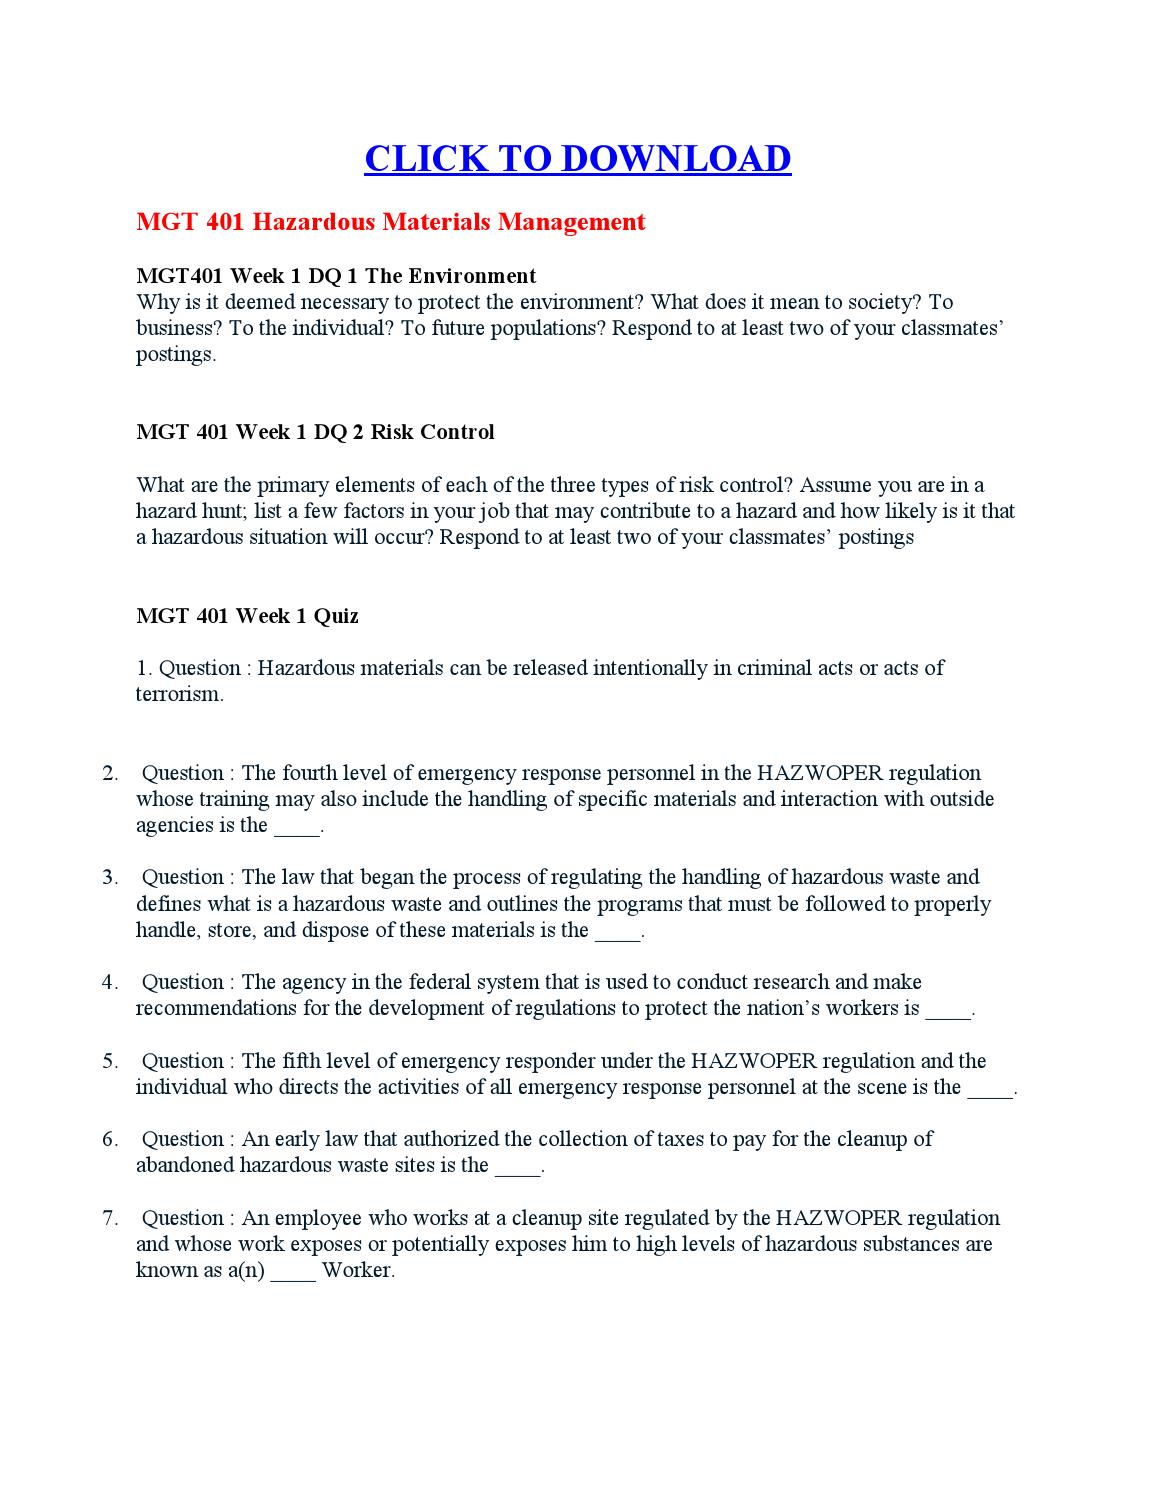 Hazardous Materials Business Plan (HMBP)